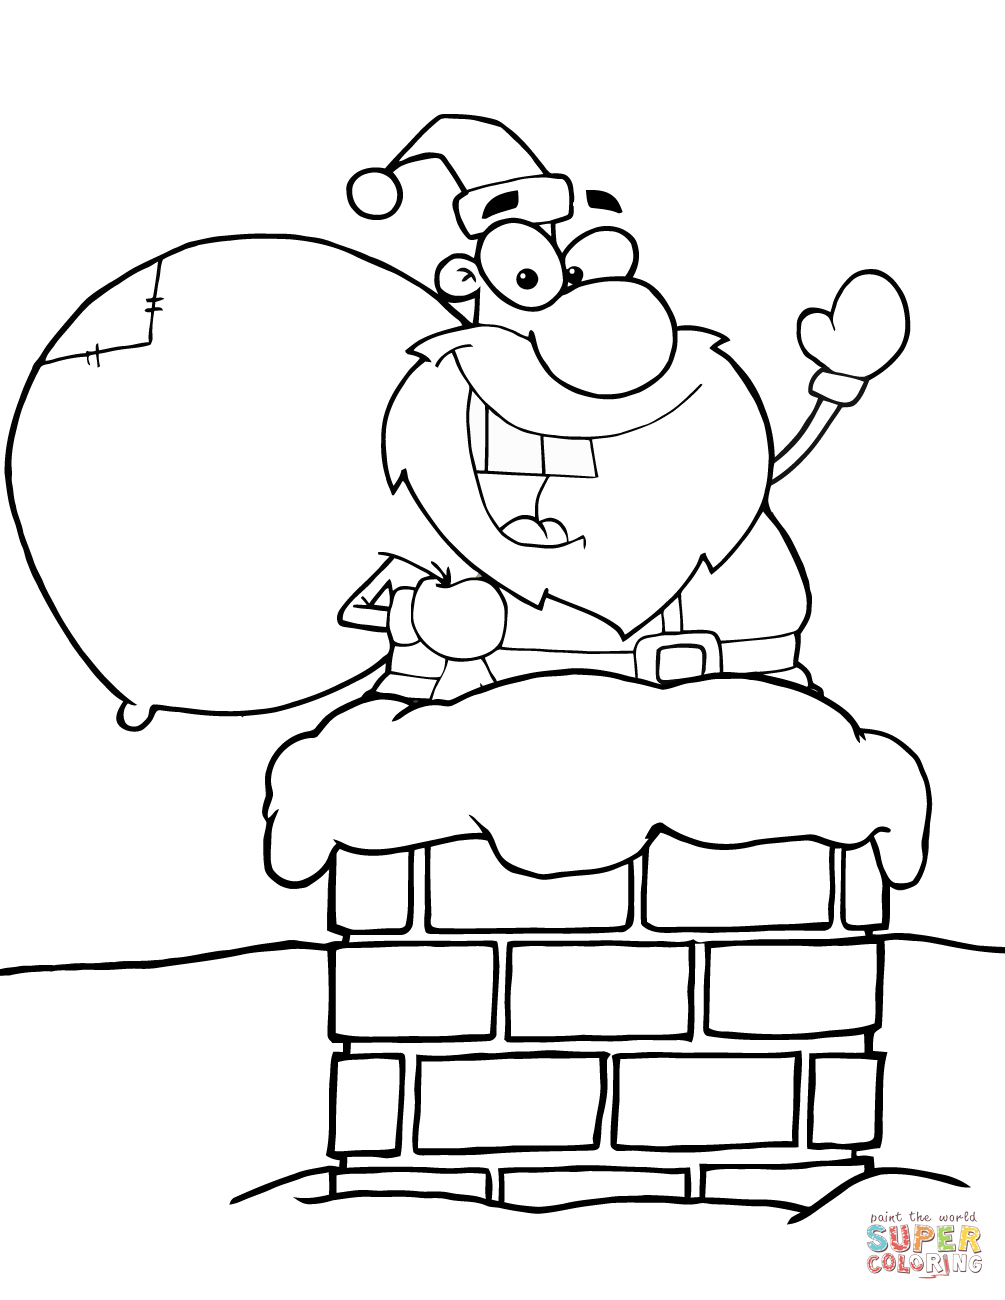 Santa Chimney Coloring Page With Claus In Free Printable Pages